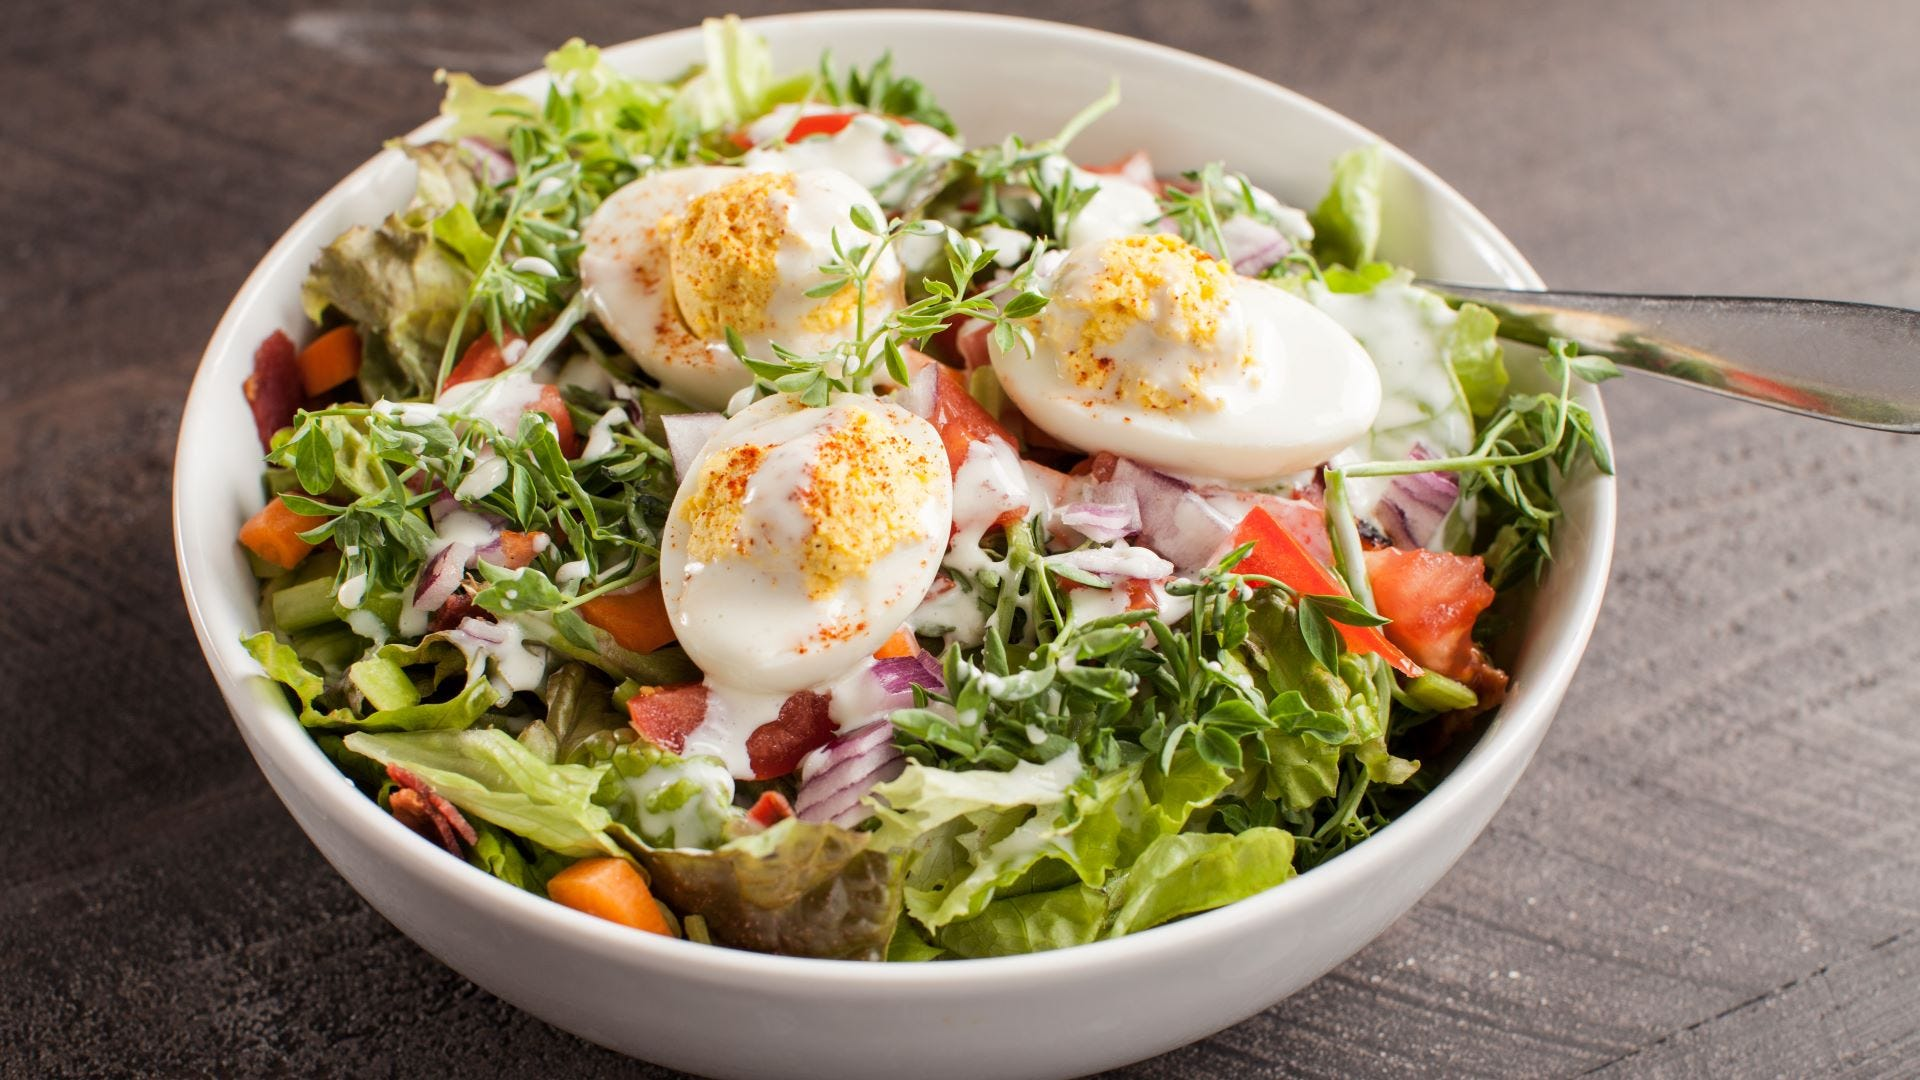 A bowl of salad with bacon and three deviled eggs on top.